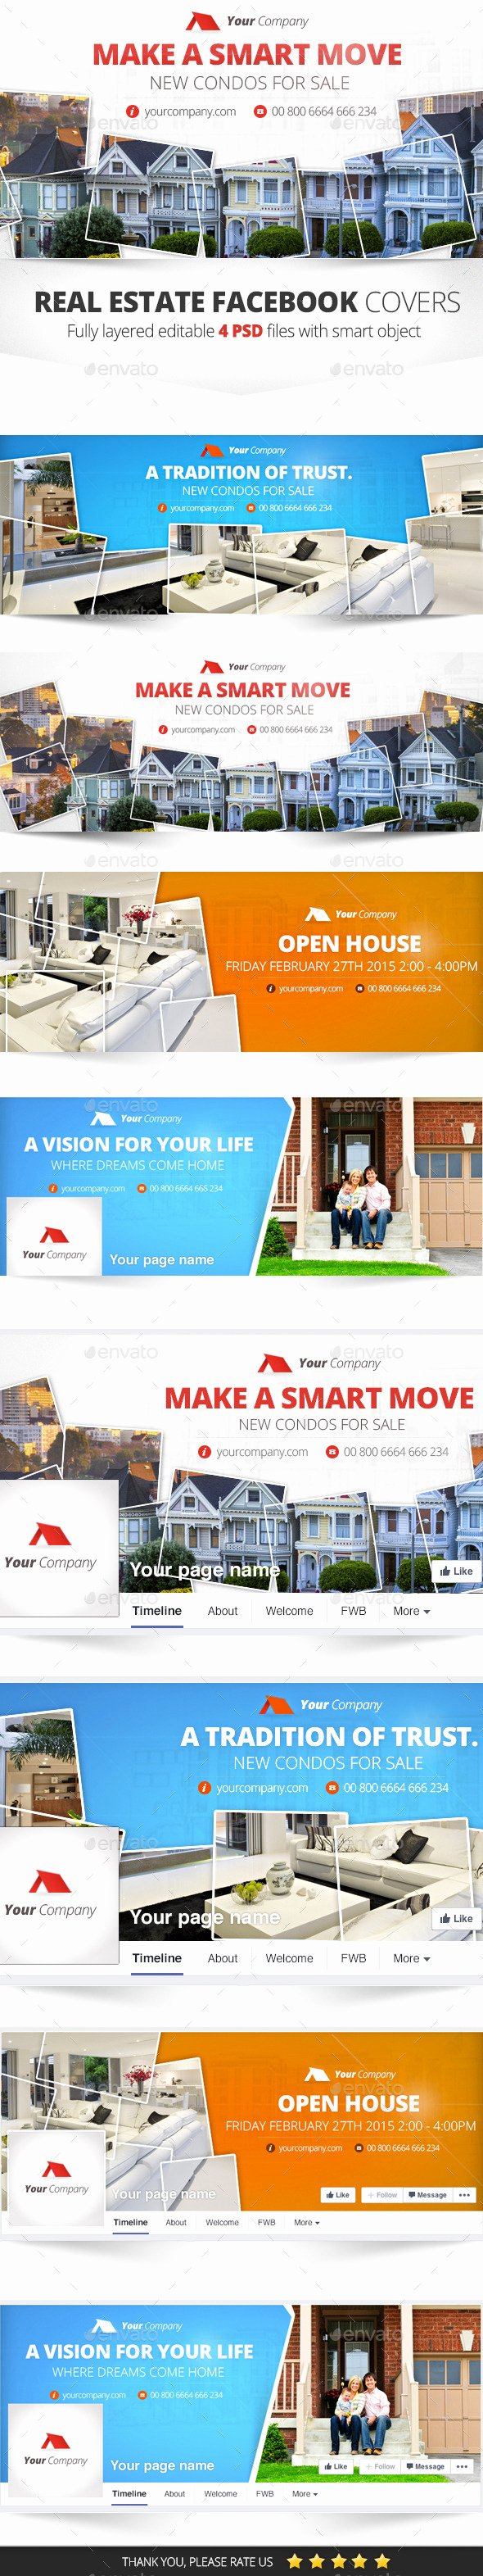 Real Estate Timeline Template Awesome Real Estate Cover 4 Psd by Zokamaric